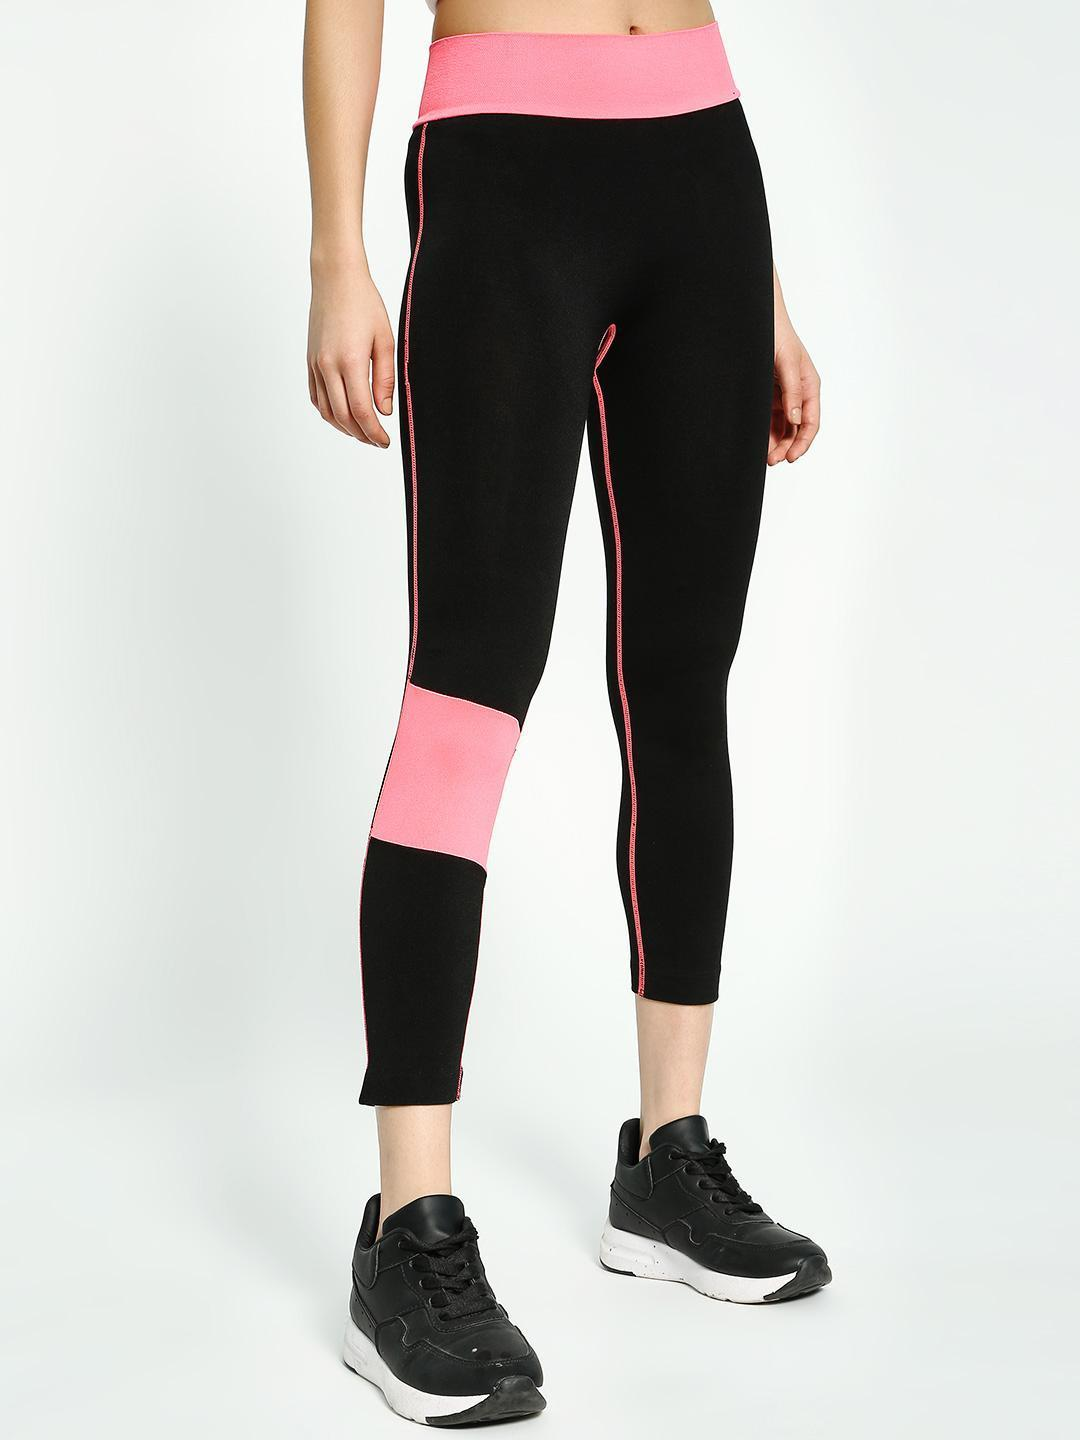 South Beach Multi Fleece Contrast Panel Leggings 1